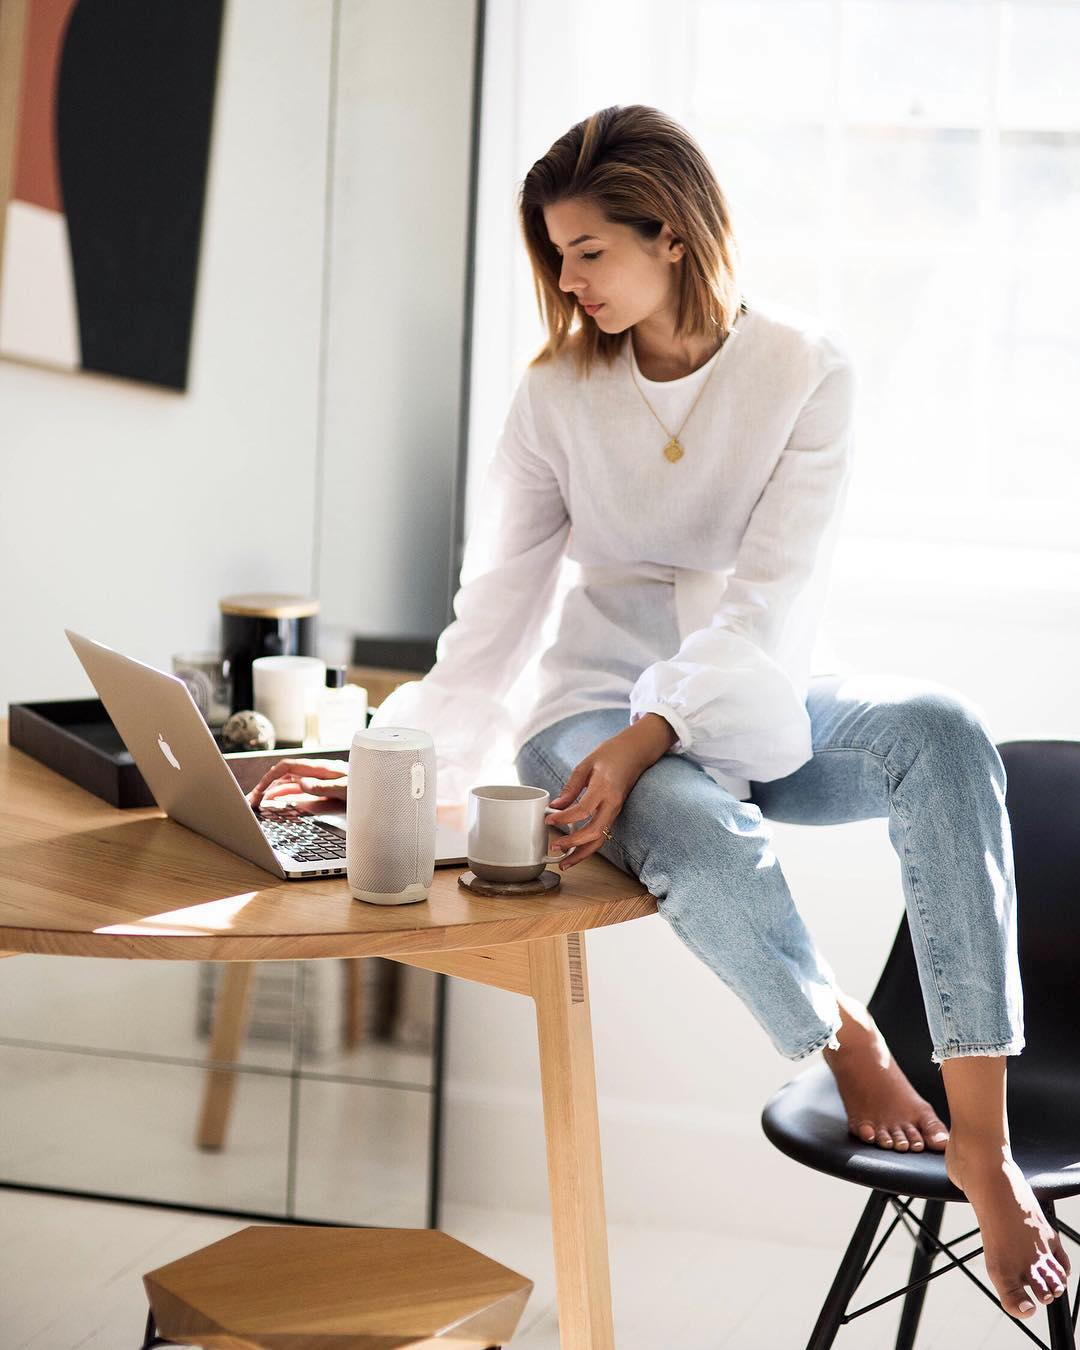 Australian Blogger and Designer Talisa Sutton Summer Outfit Idea — White Linen Top, Gold Medallion Necklace, and Classic Straight-Leg Jeans